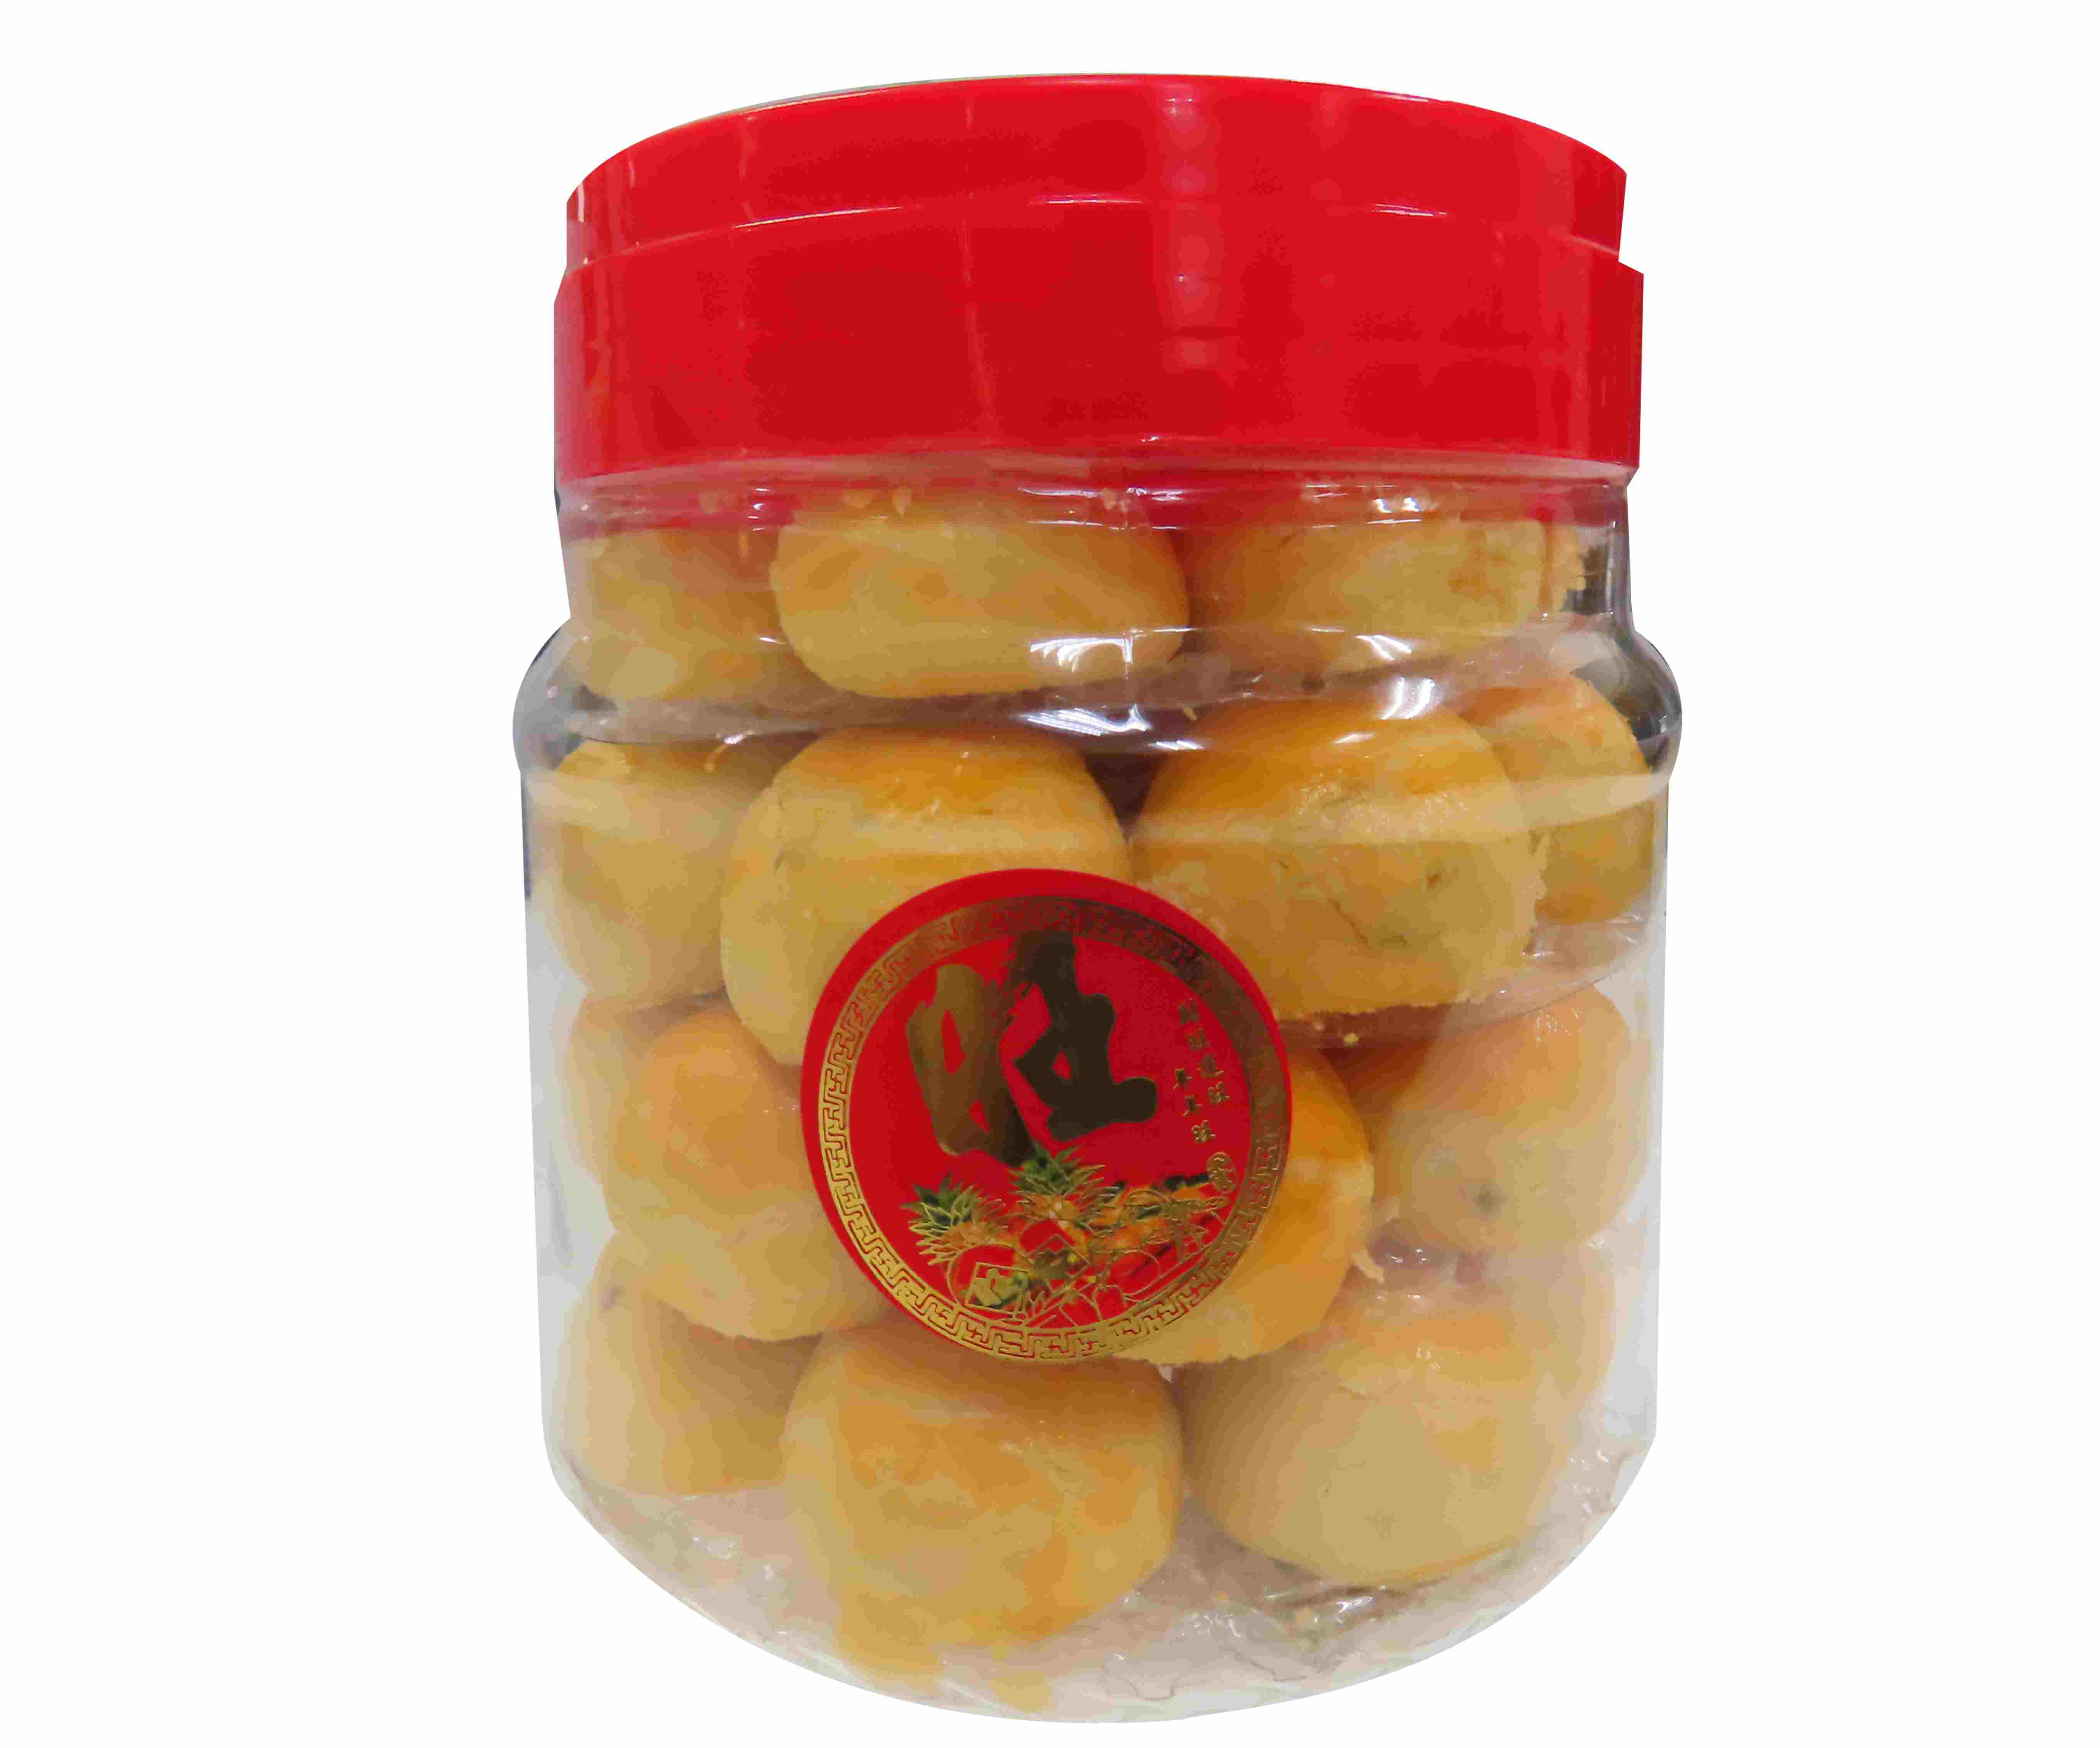 Image Butter Pineapple Ball A88 善缘 - 奶油凤梨球 (蛋素) 350grams